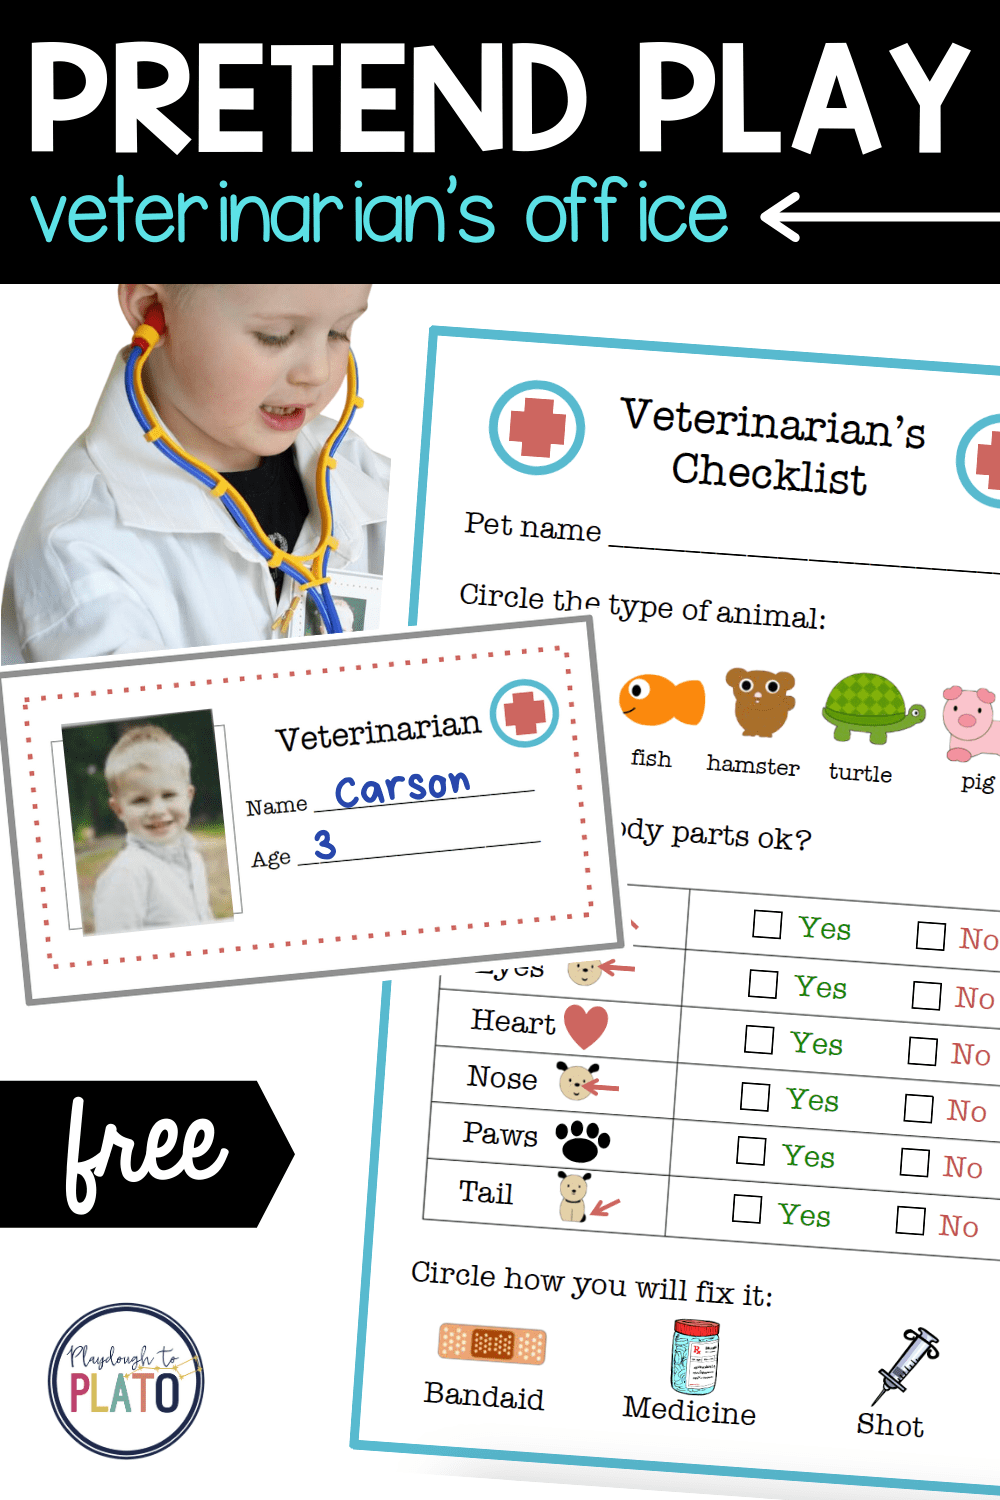 Pretend Play Veterinarian's Office